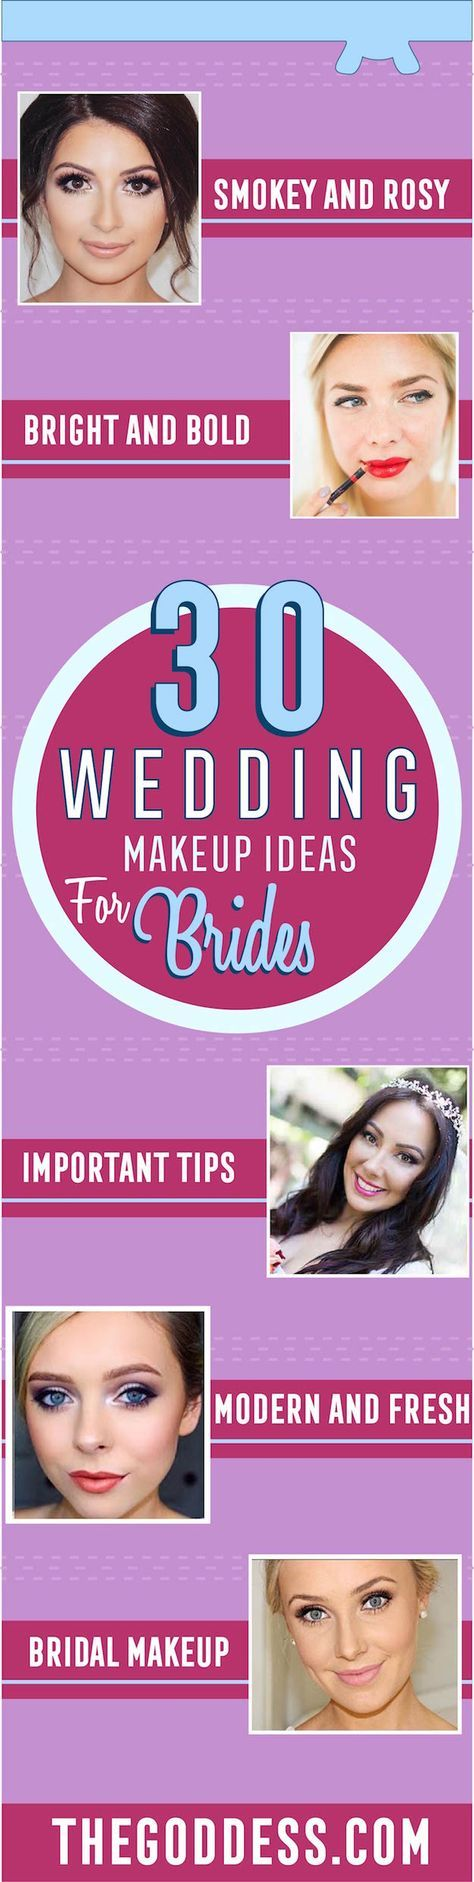 Wedding Makeup Ideas for Brides - Romantic make up ideas for the wedding - Natural and Airbrush techniques that look great with blue, green and brown eyes - rusti evening glow looks - http://thegoddess.com/wedding-makeup-for-brides